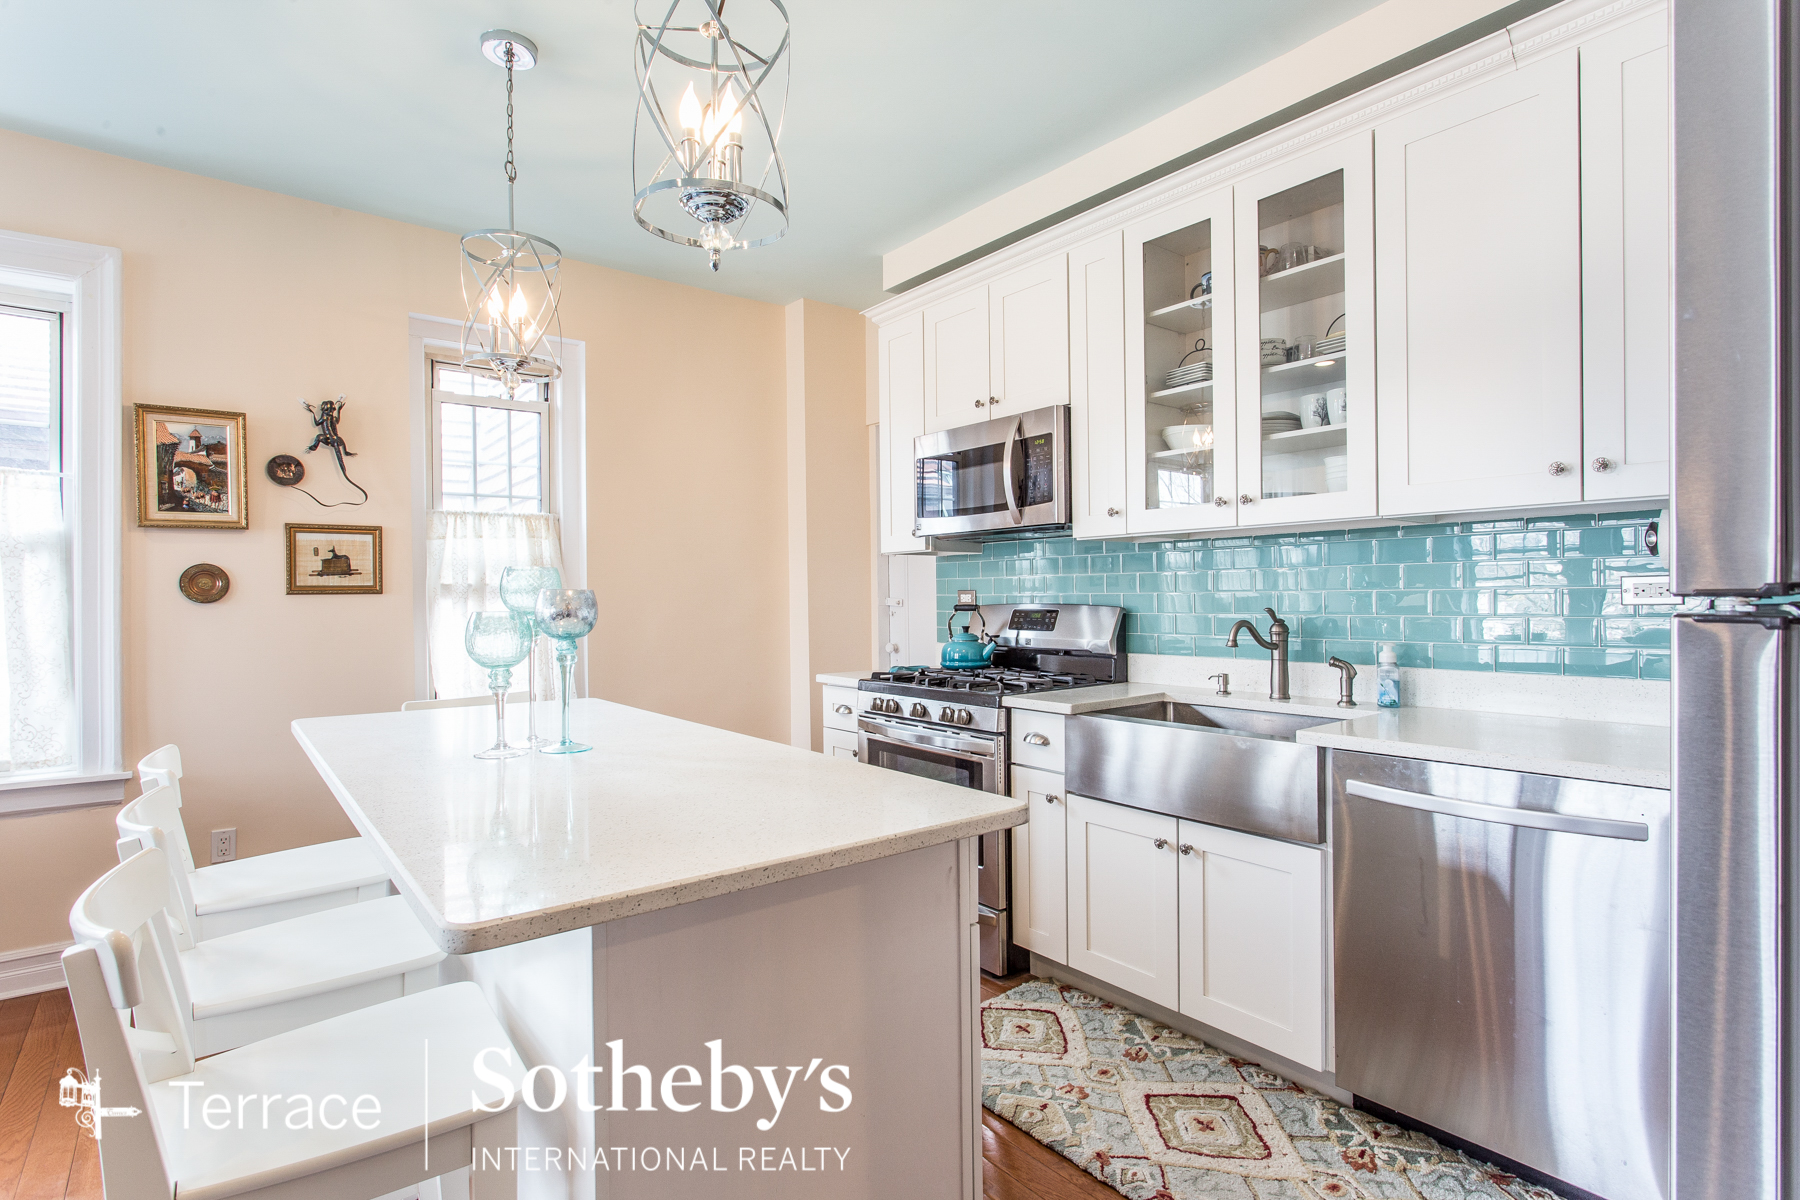 QUEENS NEW YORK REAL ESTATE